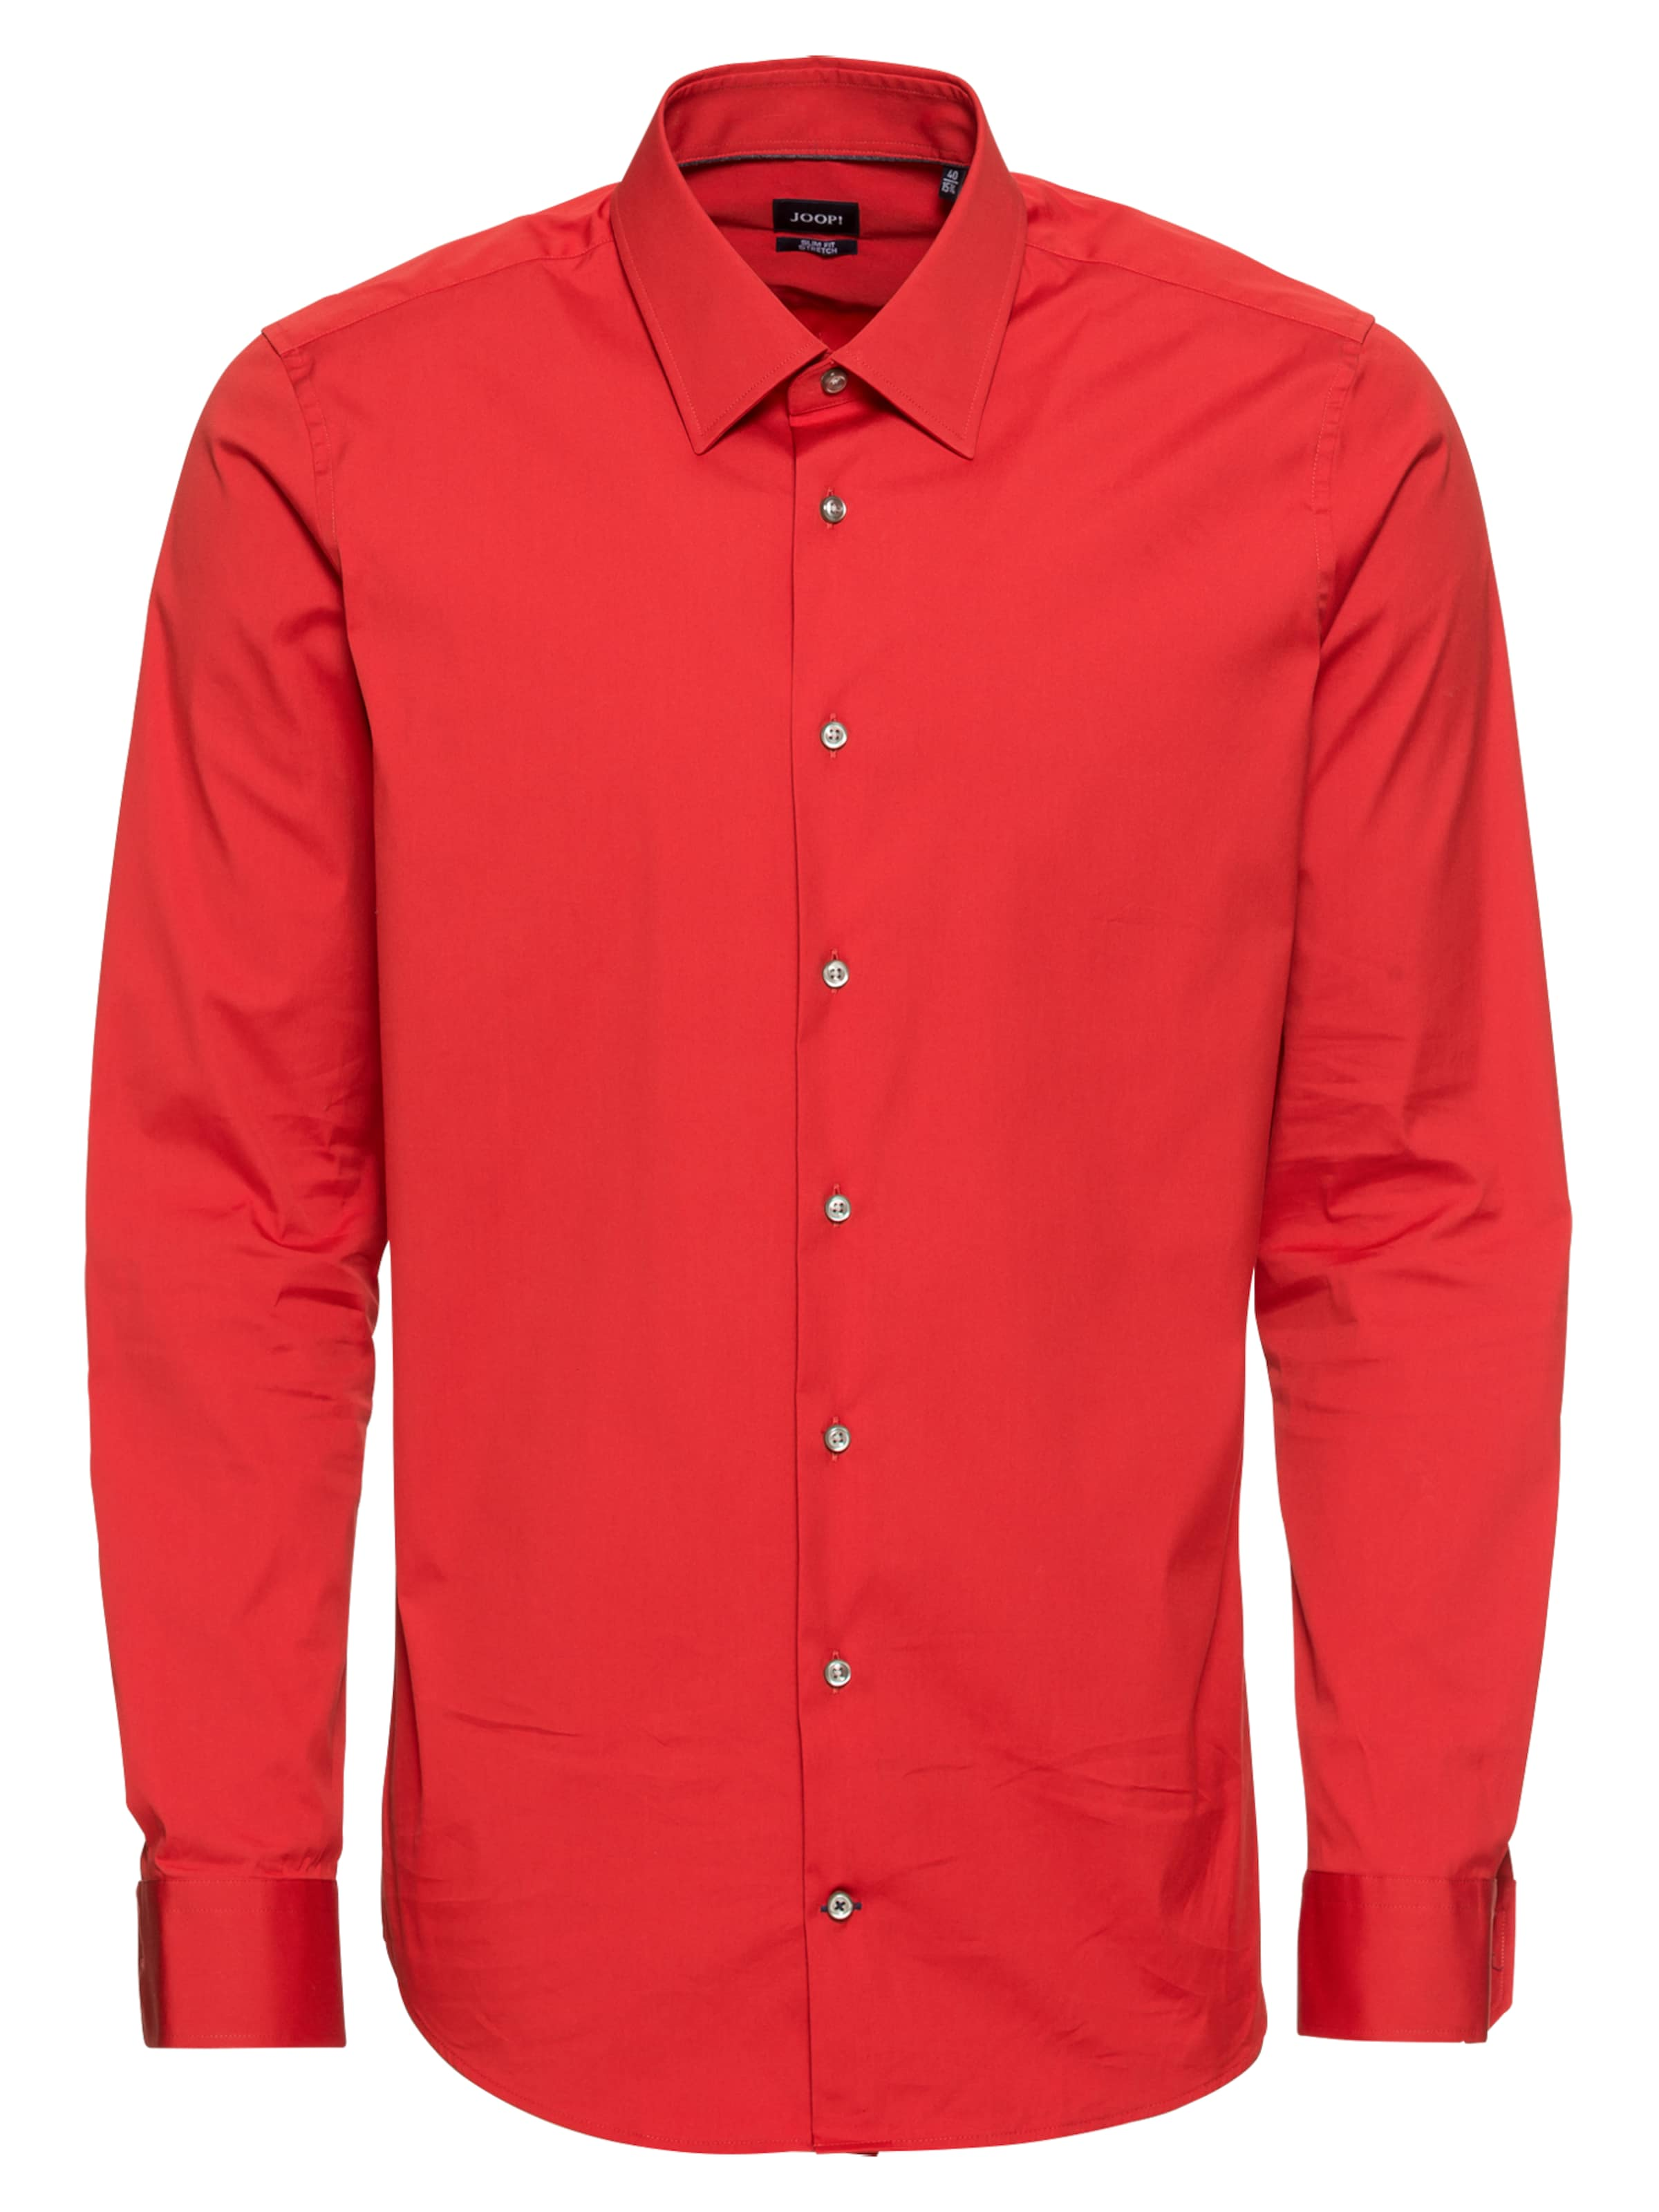 En Rouge 63pierce '17 Jsh JoopChemise 10000629 02' Business rBxedCWo